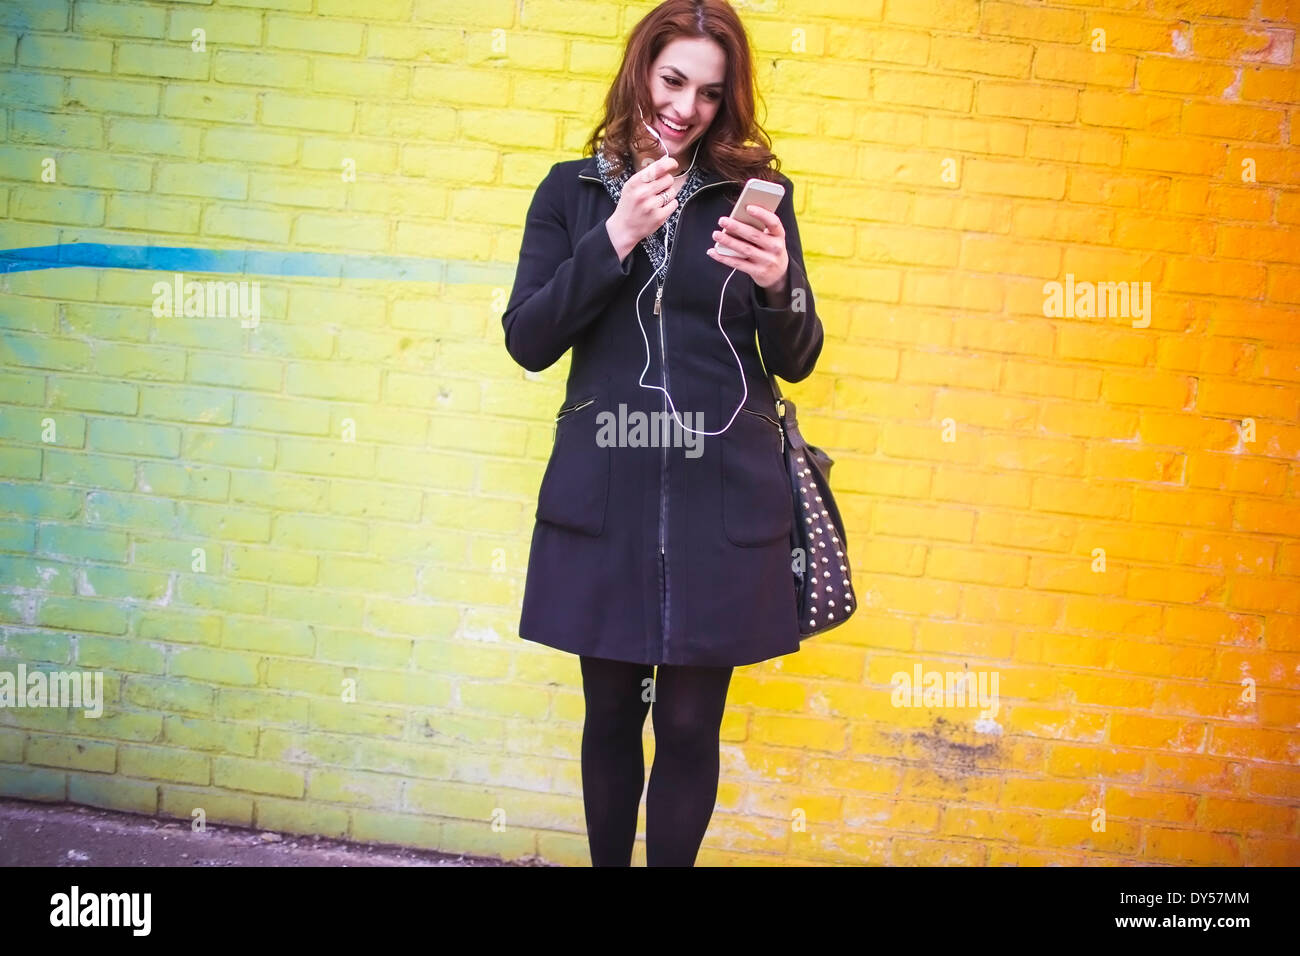 Jeune femme choisissant music on city street Photo Stock